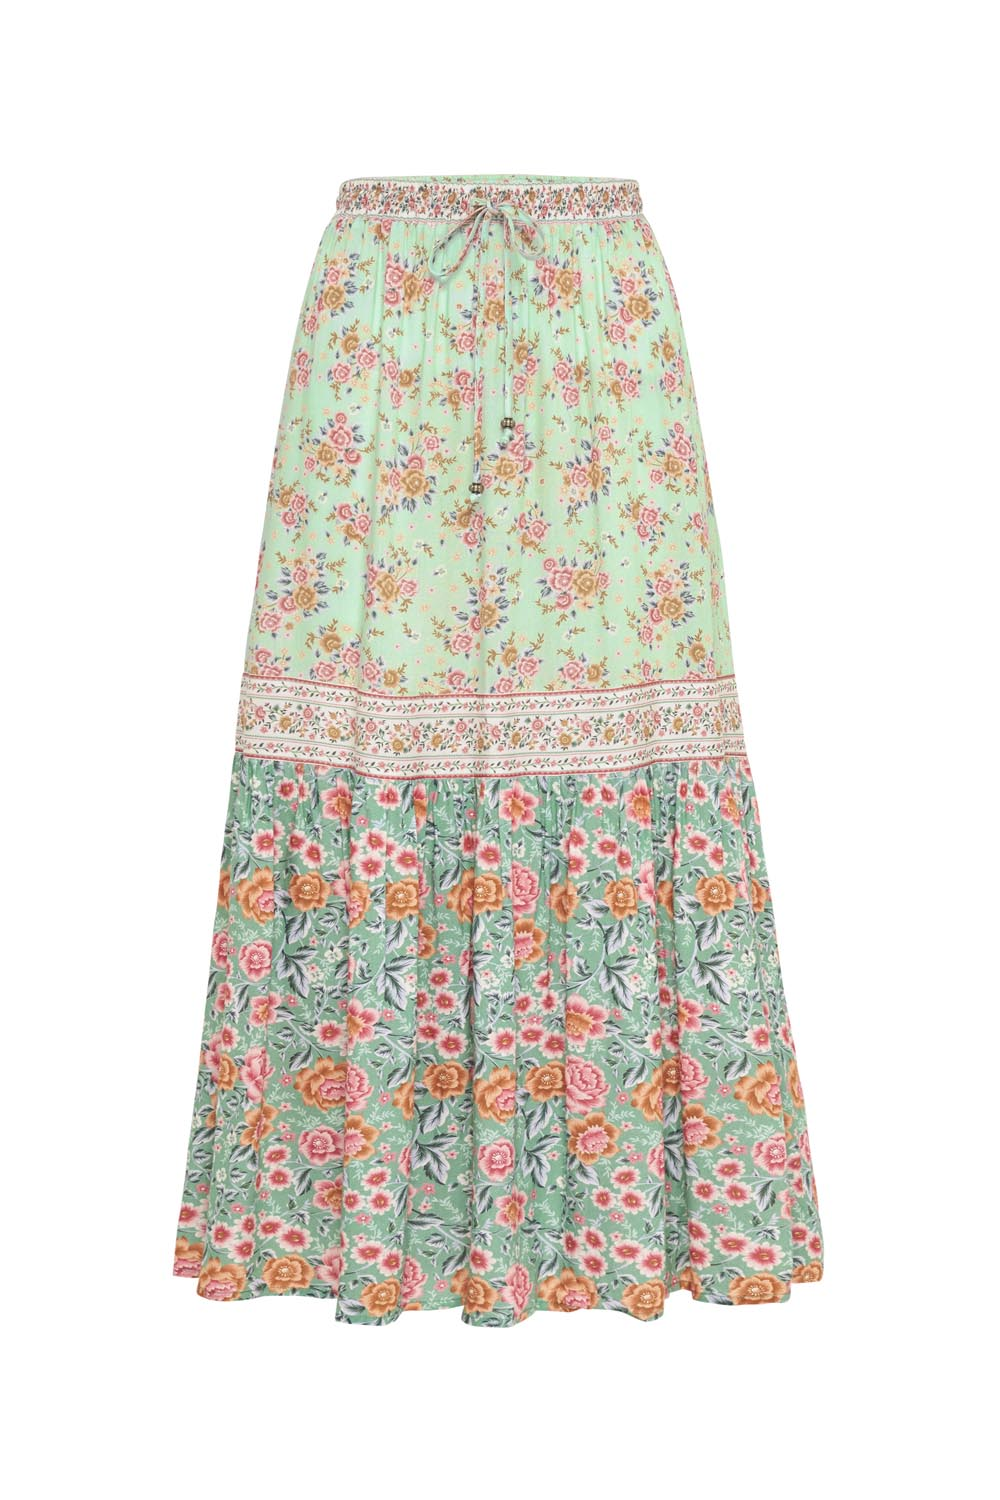 Harmony Midi Skirt in Mint